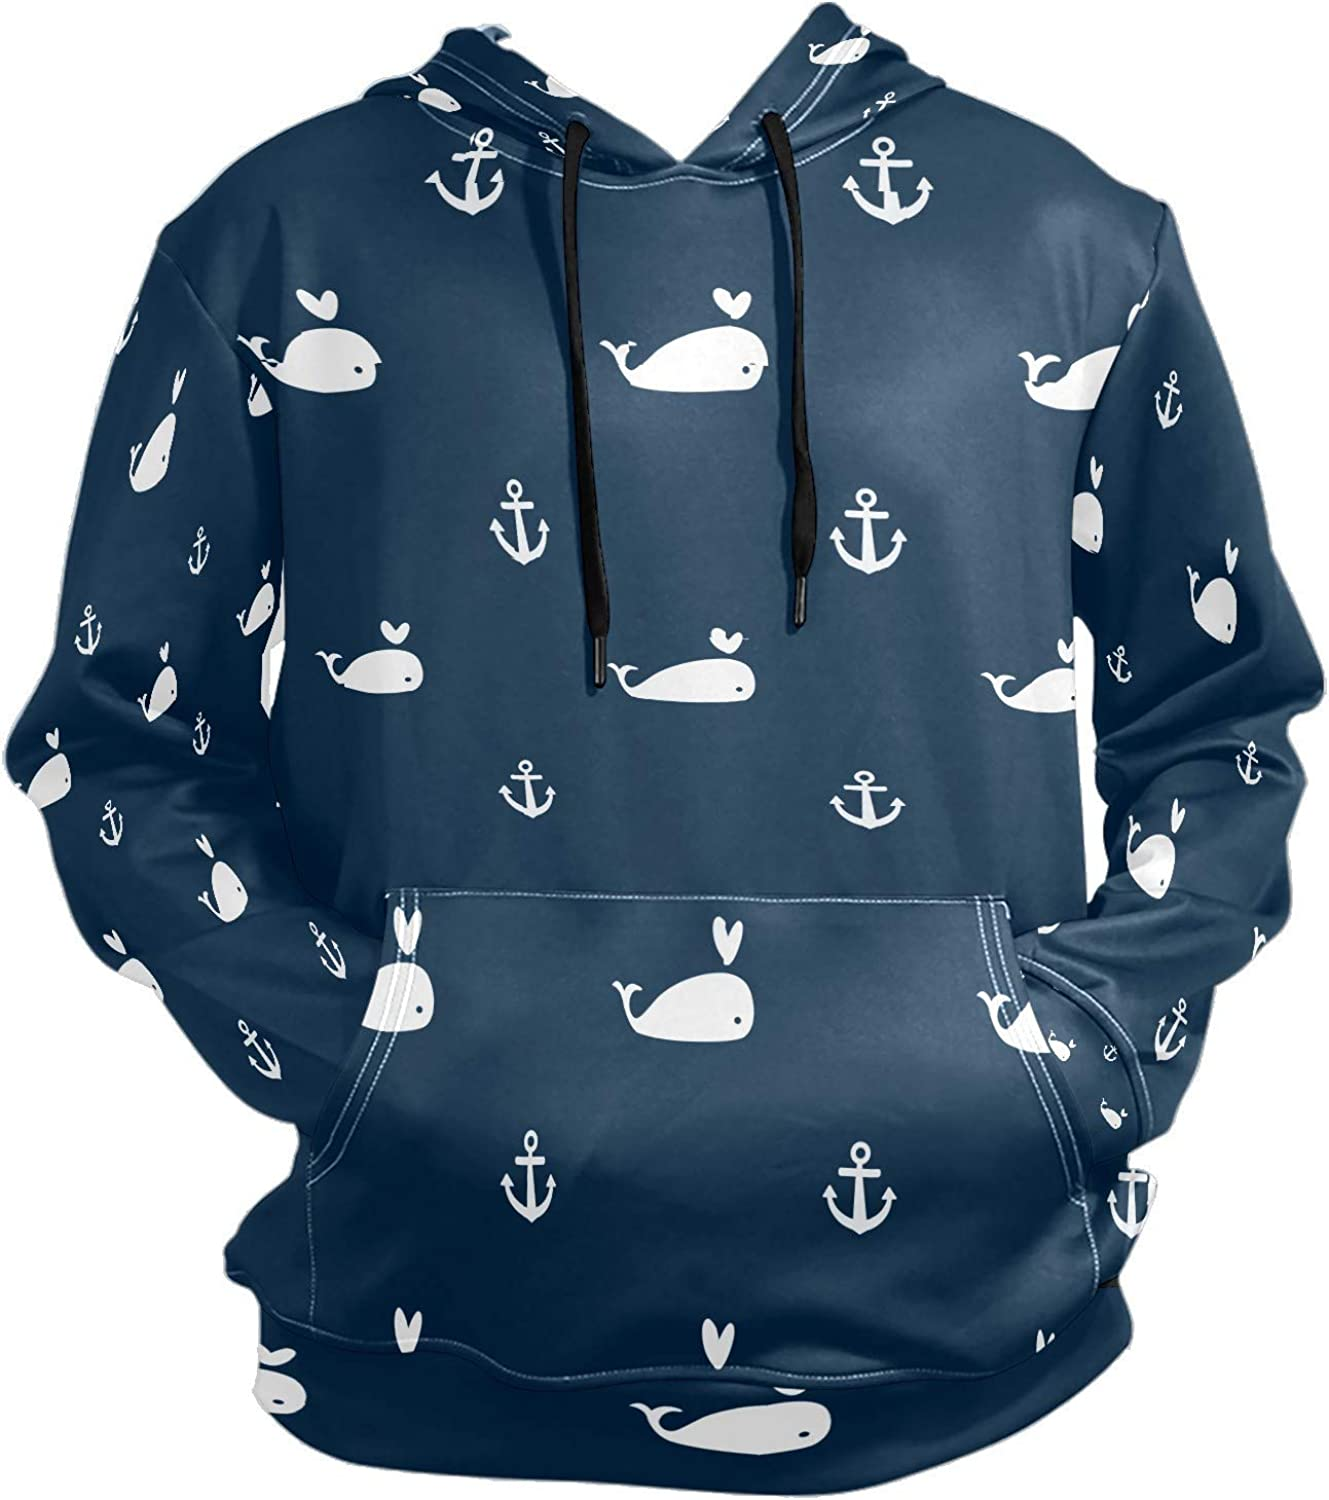 Men's Sport Hoodie Nautical Whale Anchor Navy Blue Big and Tall Hoodies for Men Women Oversized Hooded Sweatshirt Hip Hop Pullover Hoodie Midweight Hood for Boys Girls